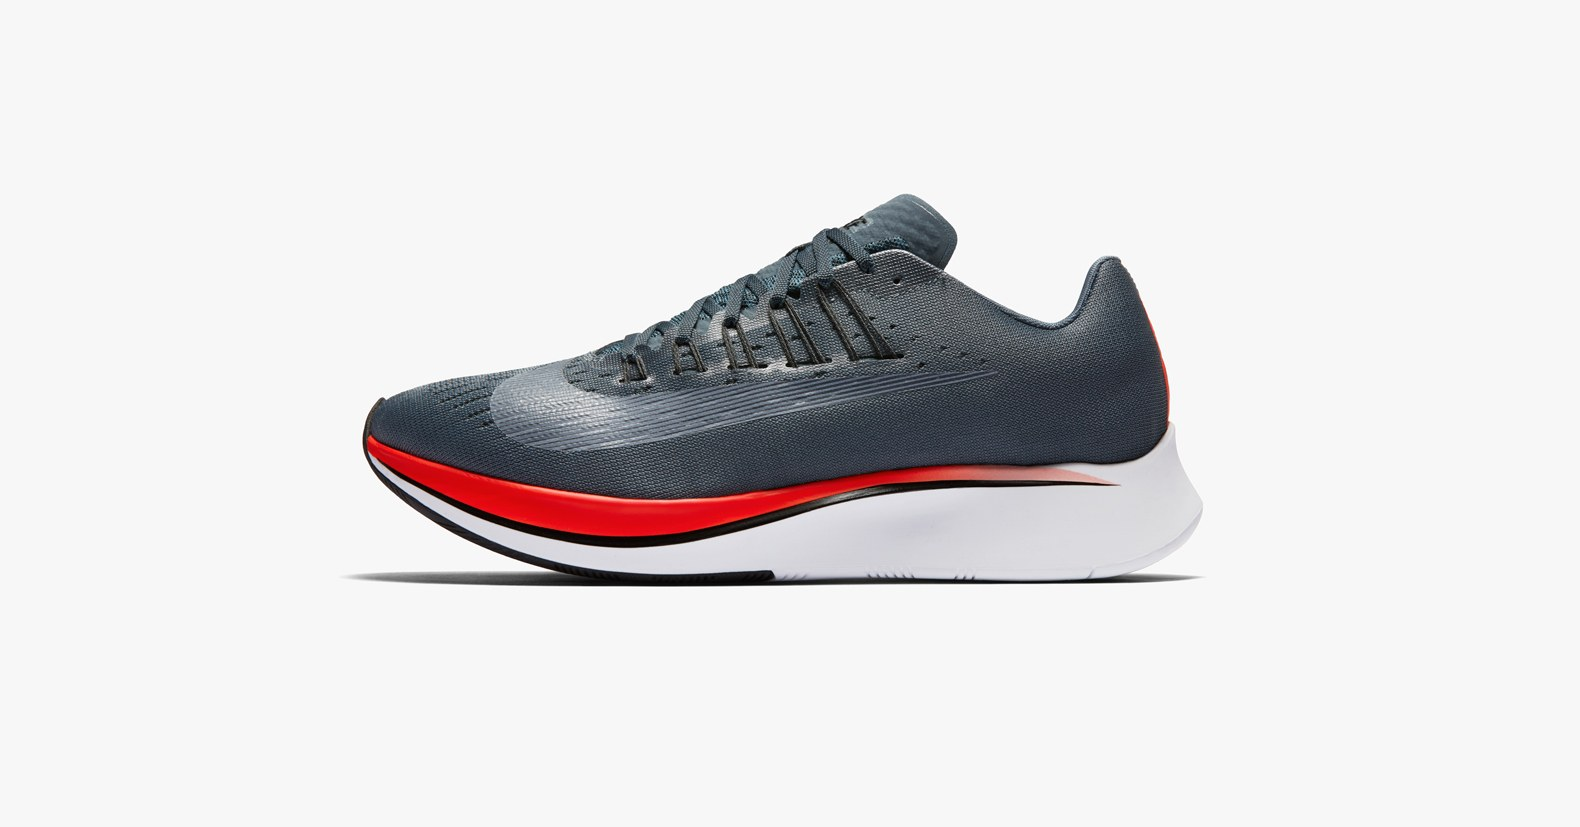 competitive price 0f414 93f59 Do Nike s New Marathon Shoes Make You Faster  A Nike-Funded Study Says Yes.  - GadgetRio.US